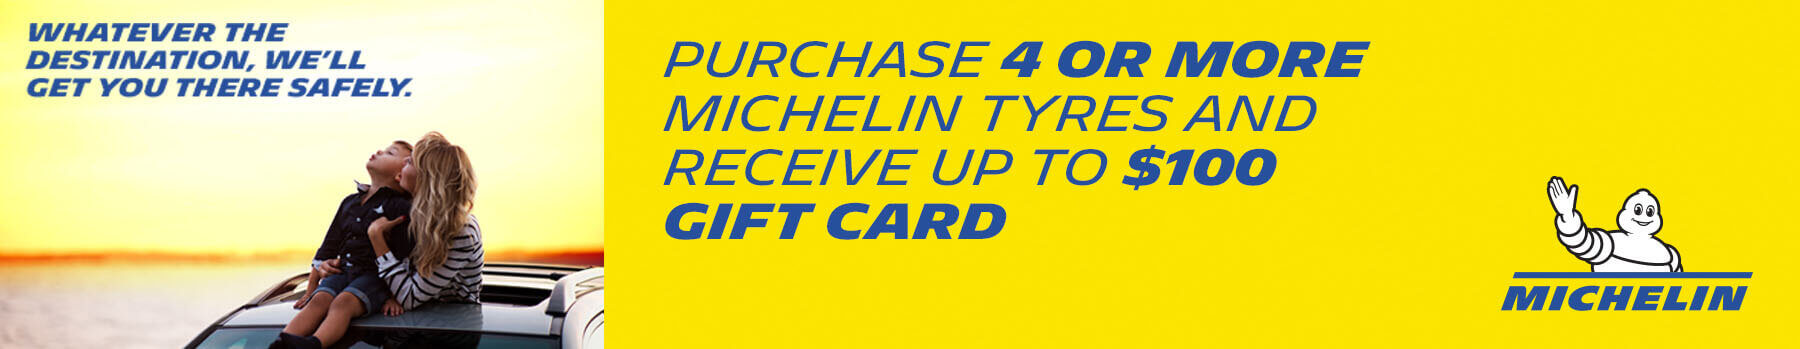 Receive up to $100 Gift Car by purchasing 4 or more Michelin tyres